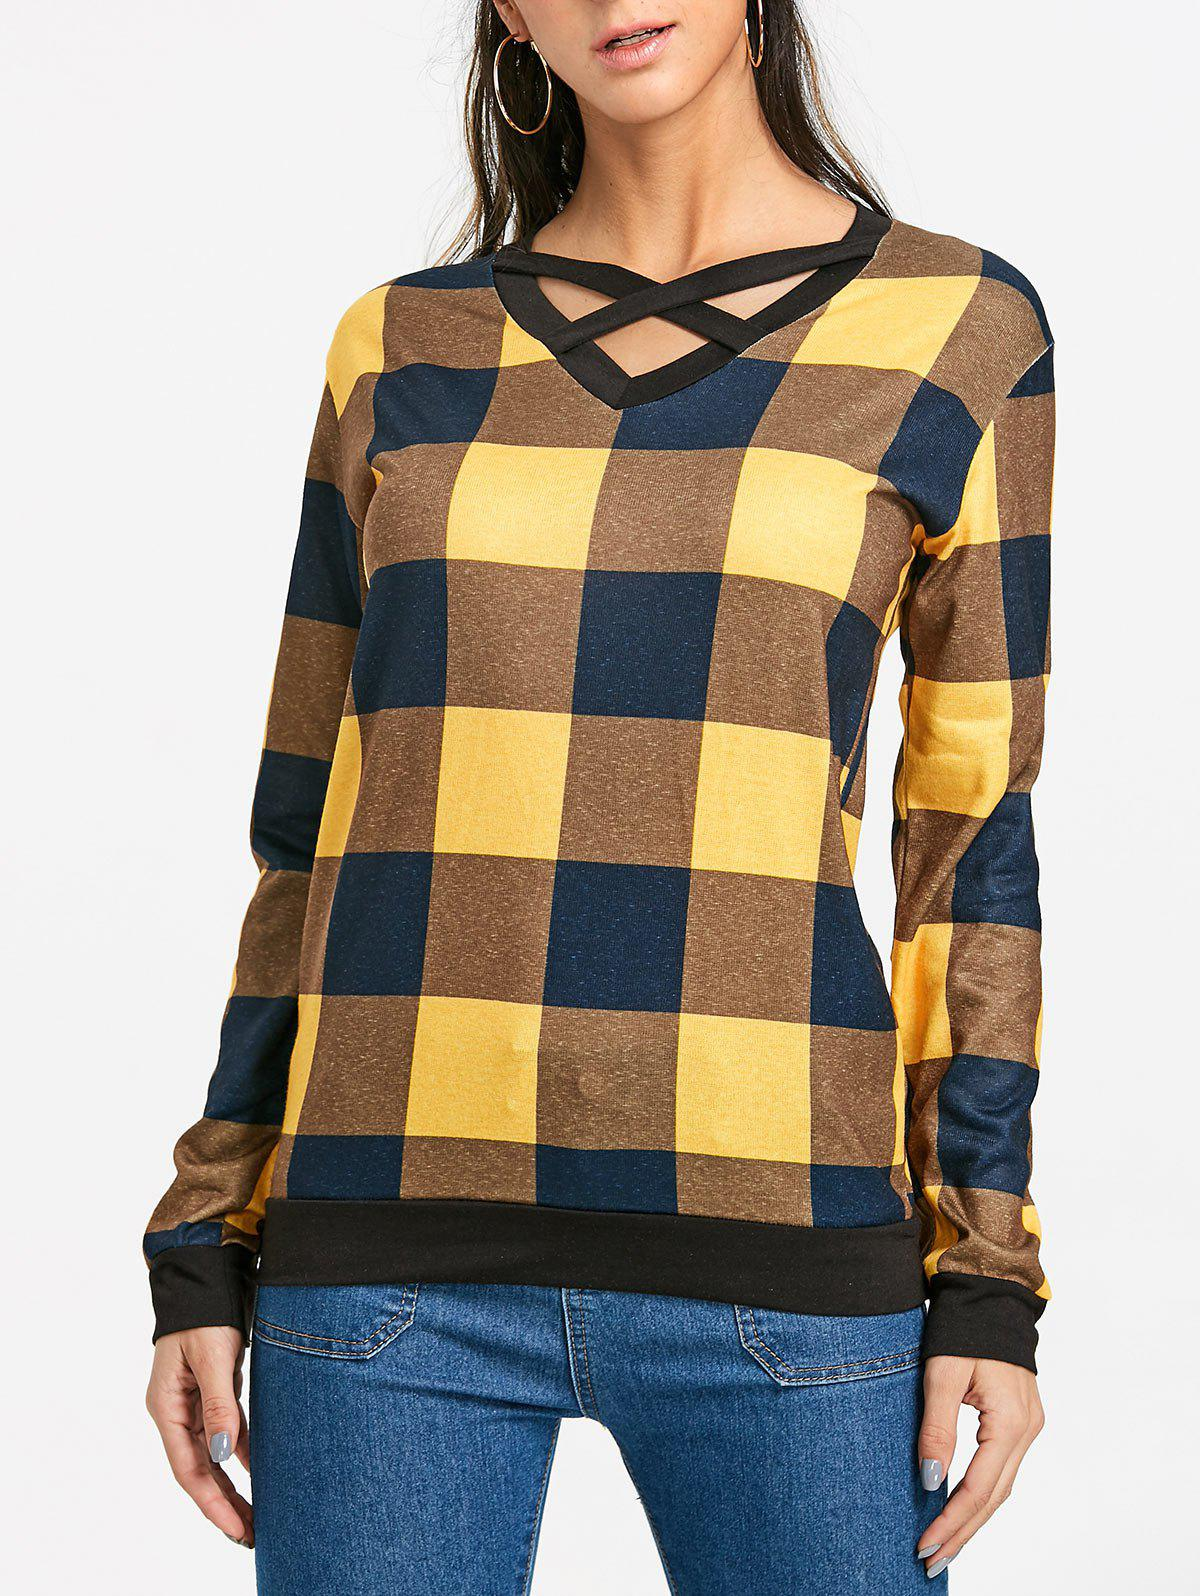 Chic Plaid Criss Cross Long Sleeve Top